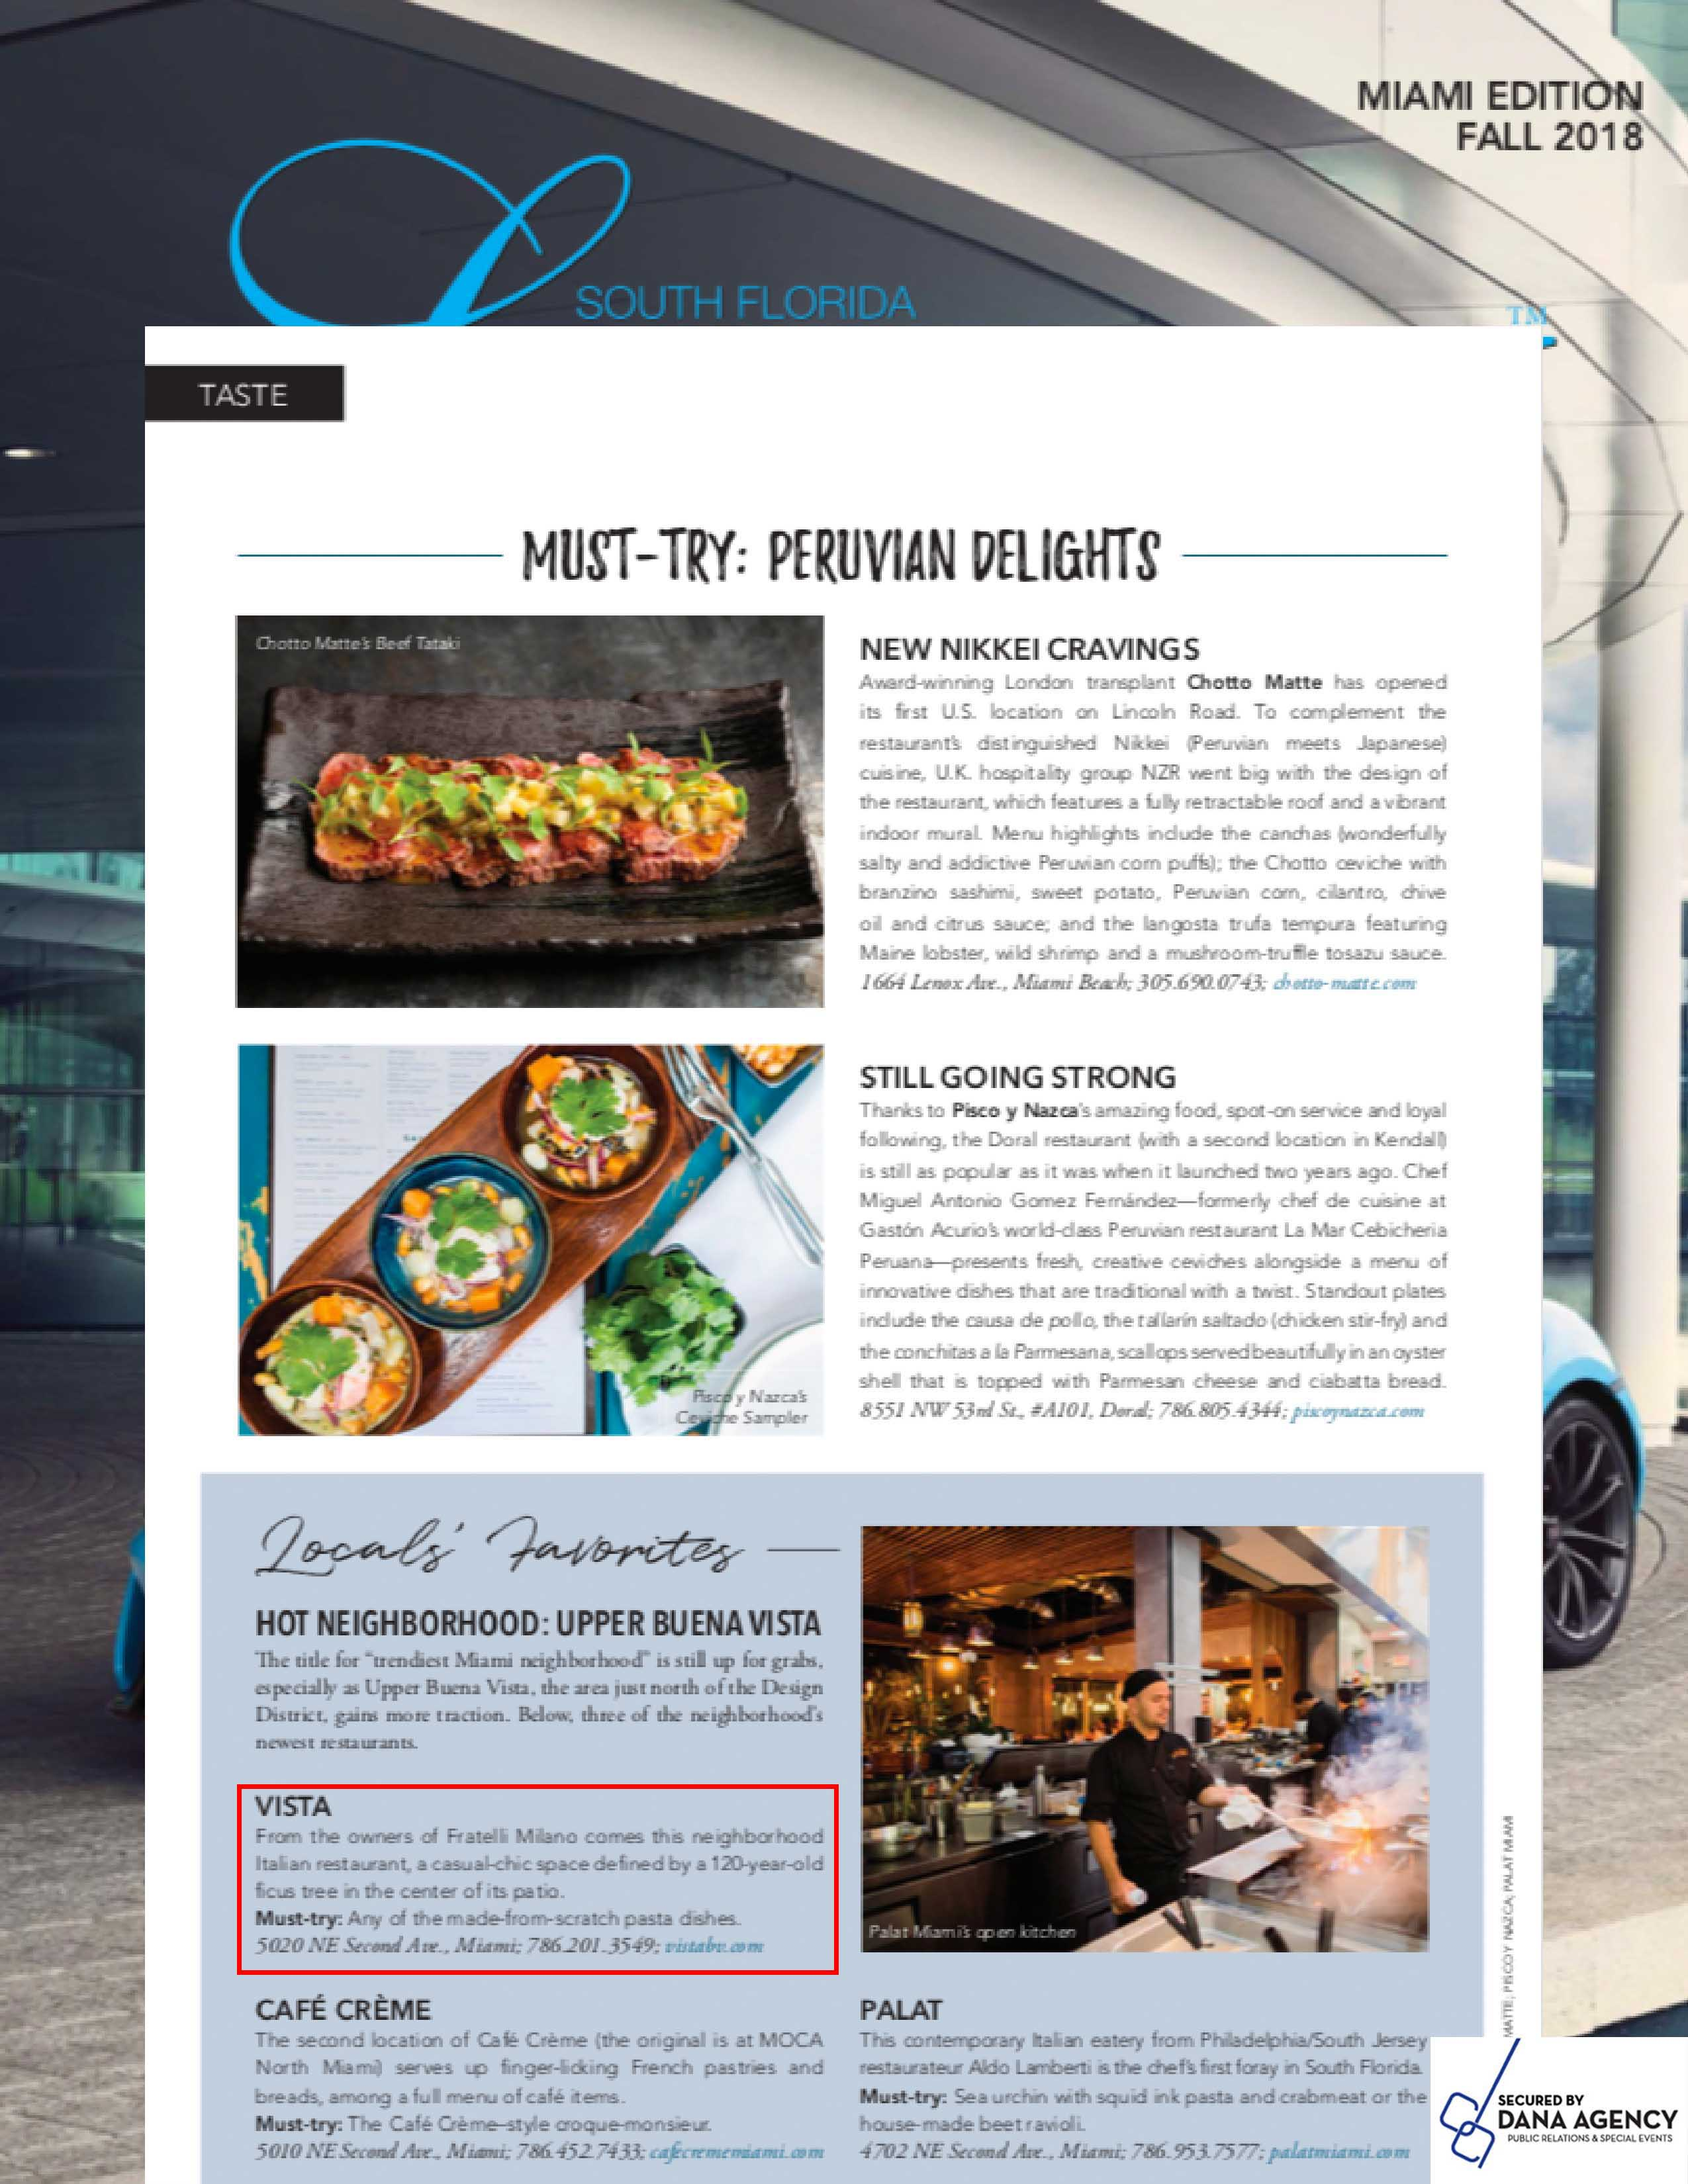 SouthFloridaLuxuryGuide_7.31.18_Print_Page2